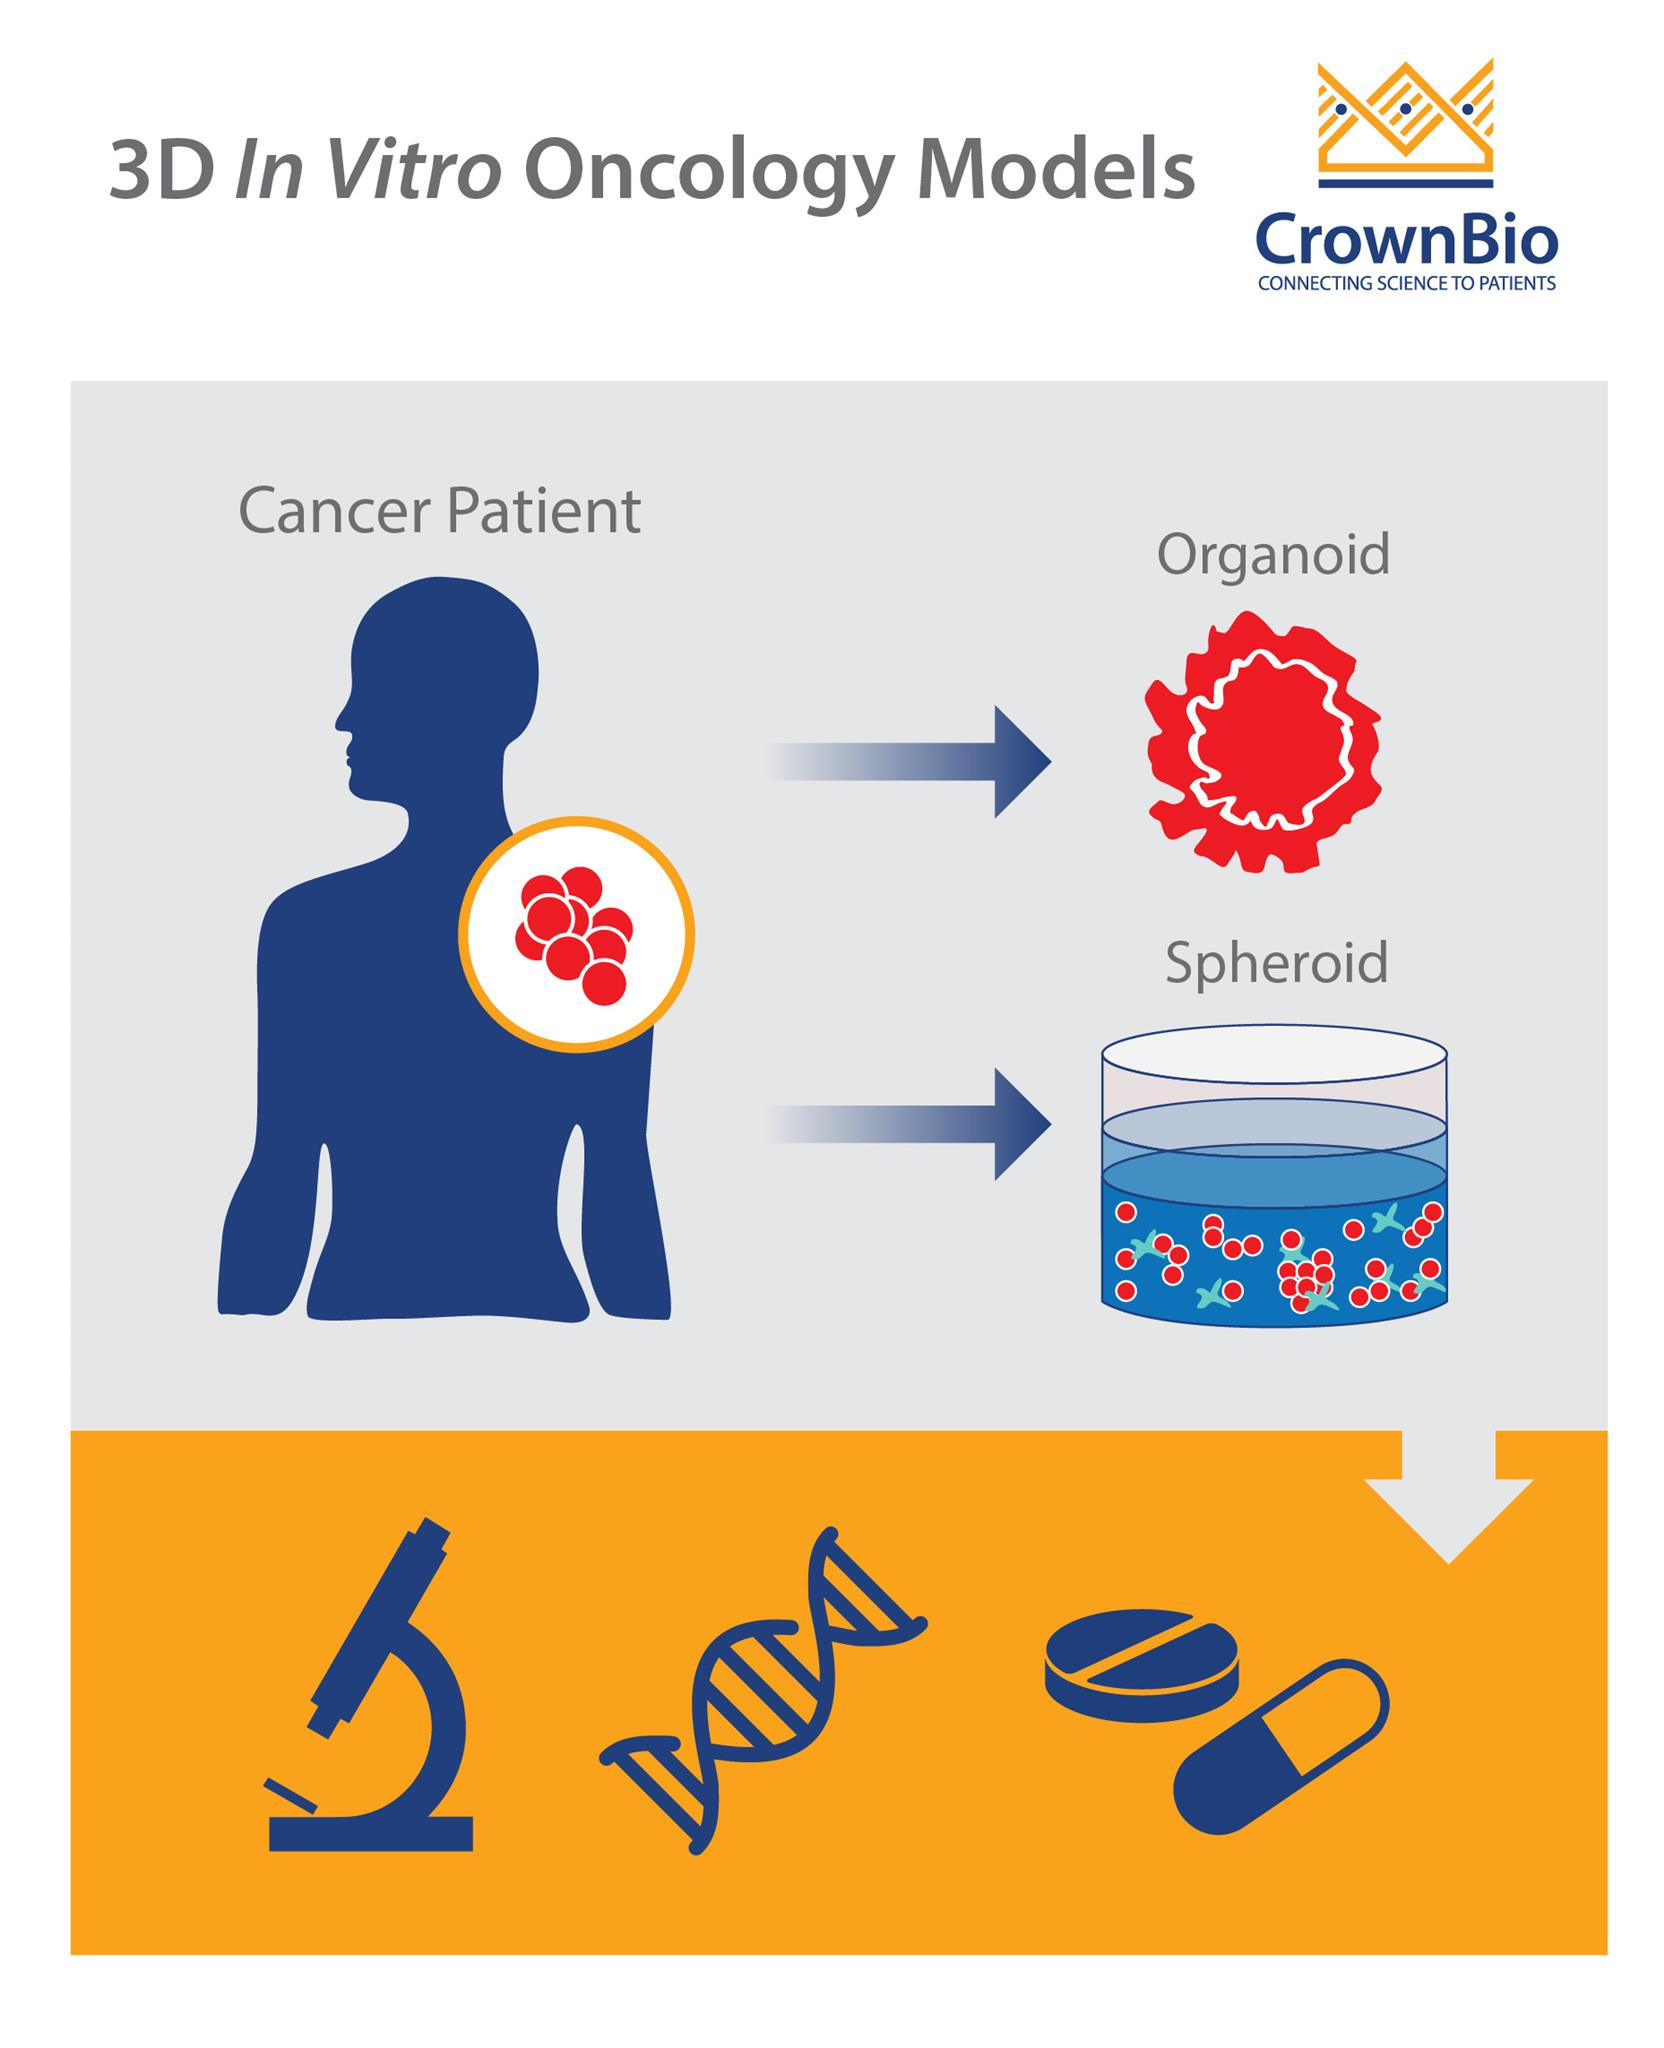 Facilitating Drug Discovery with 3D In Vitro Oncology Models